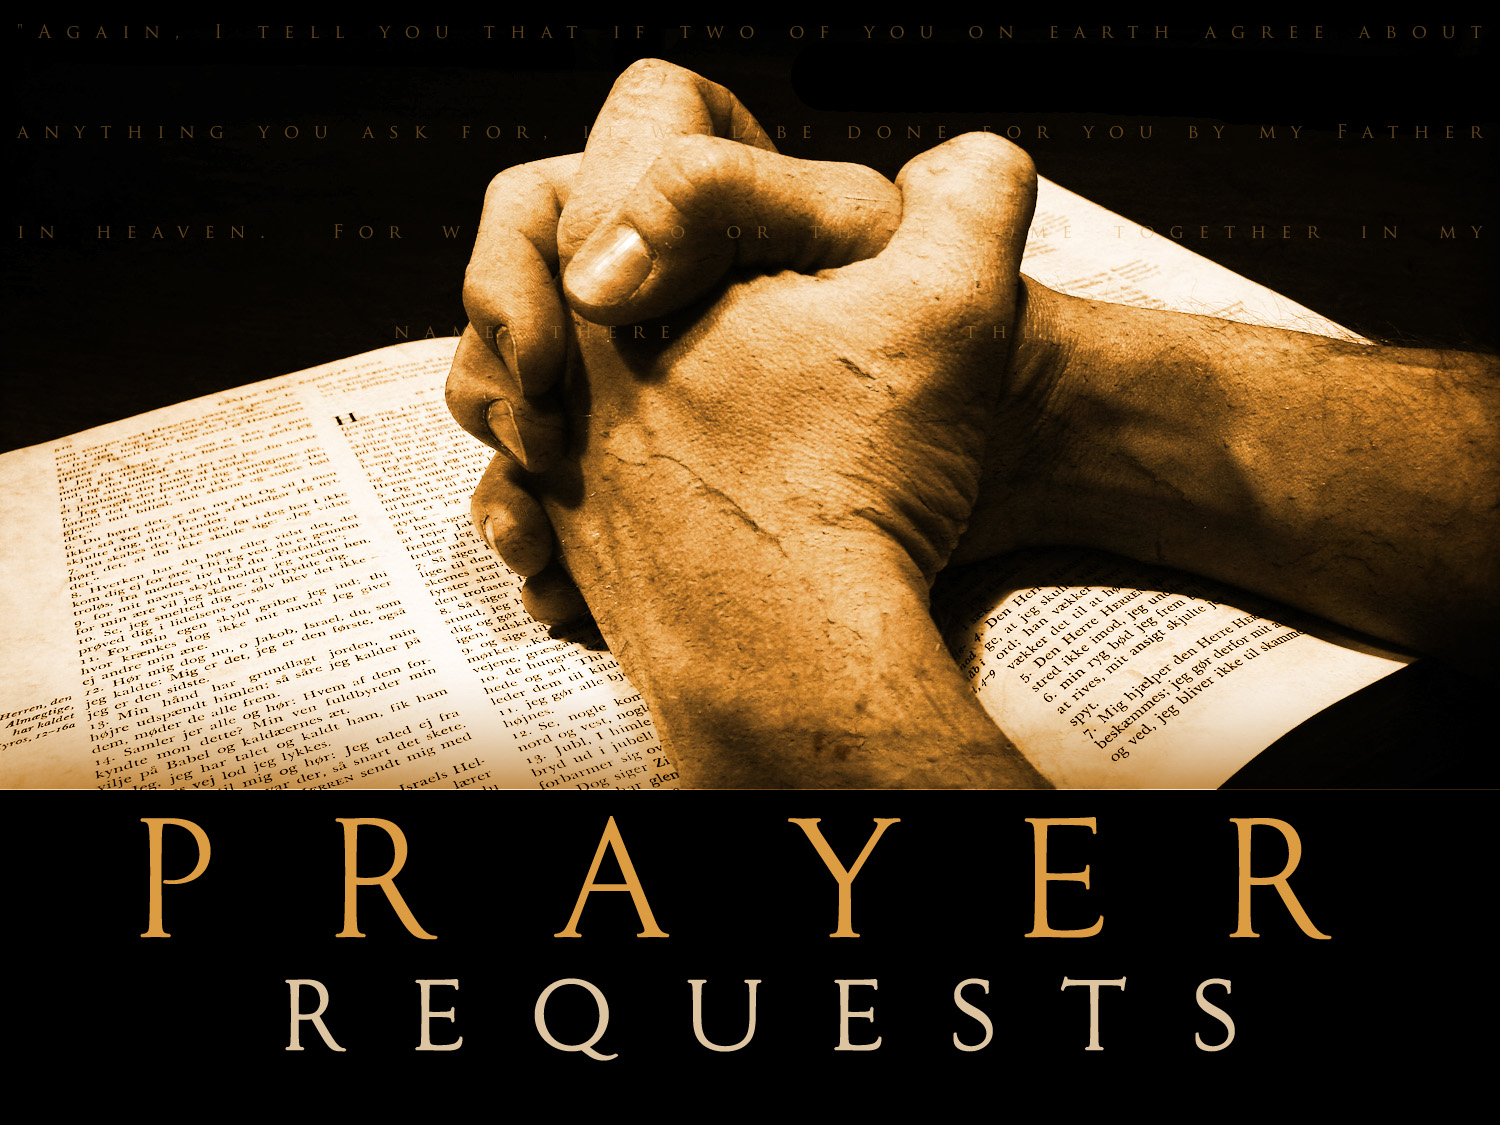 [Photo of Prayer Requests]